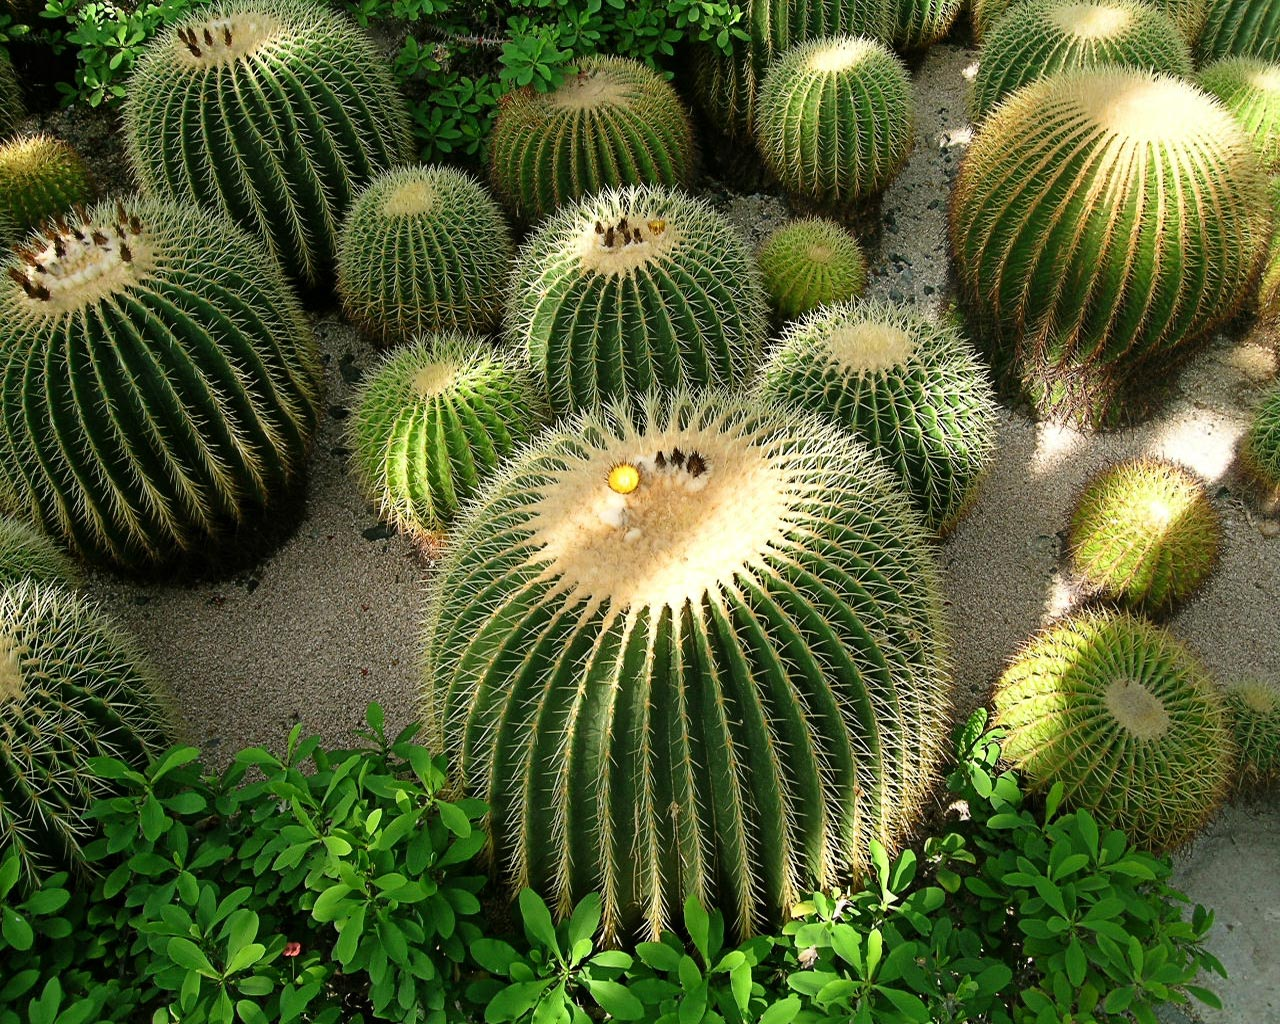 Desert cactus hd wallpapers - Tipos de cactus fotos ...